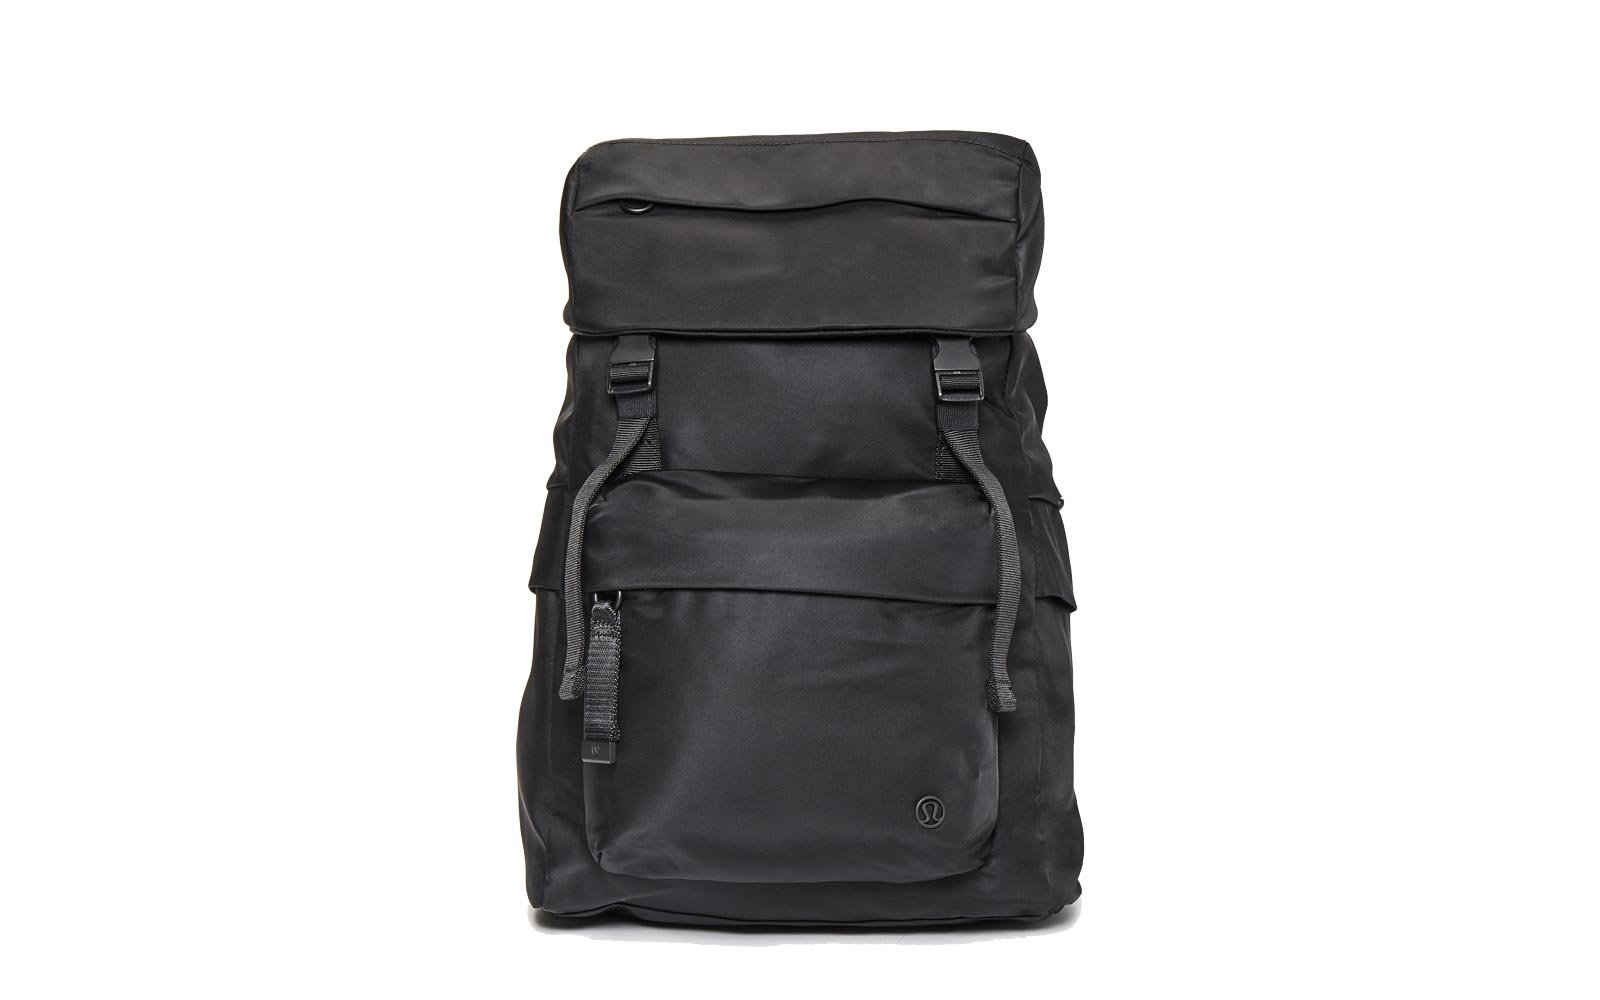 ab104afb9783 The Most Stylish Travel Backpacks For Women